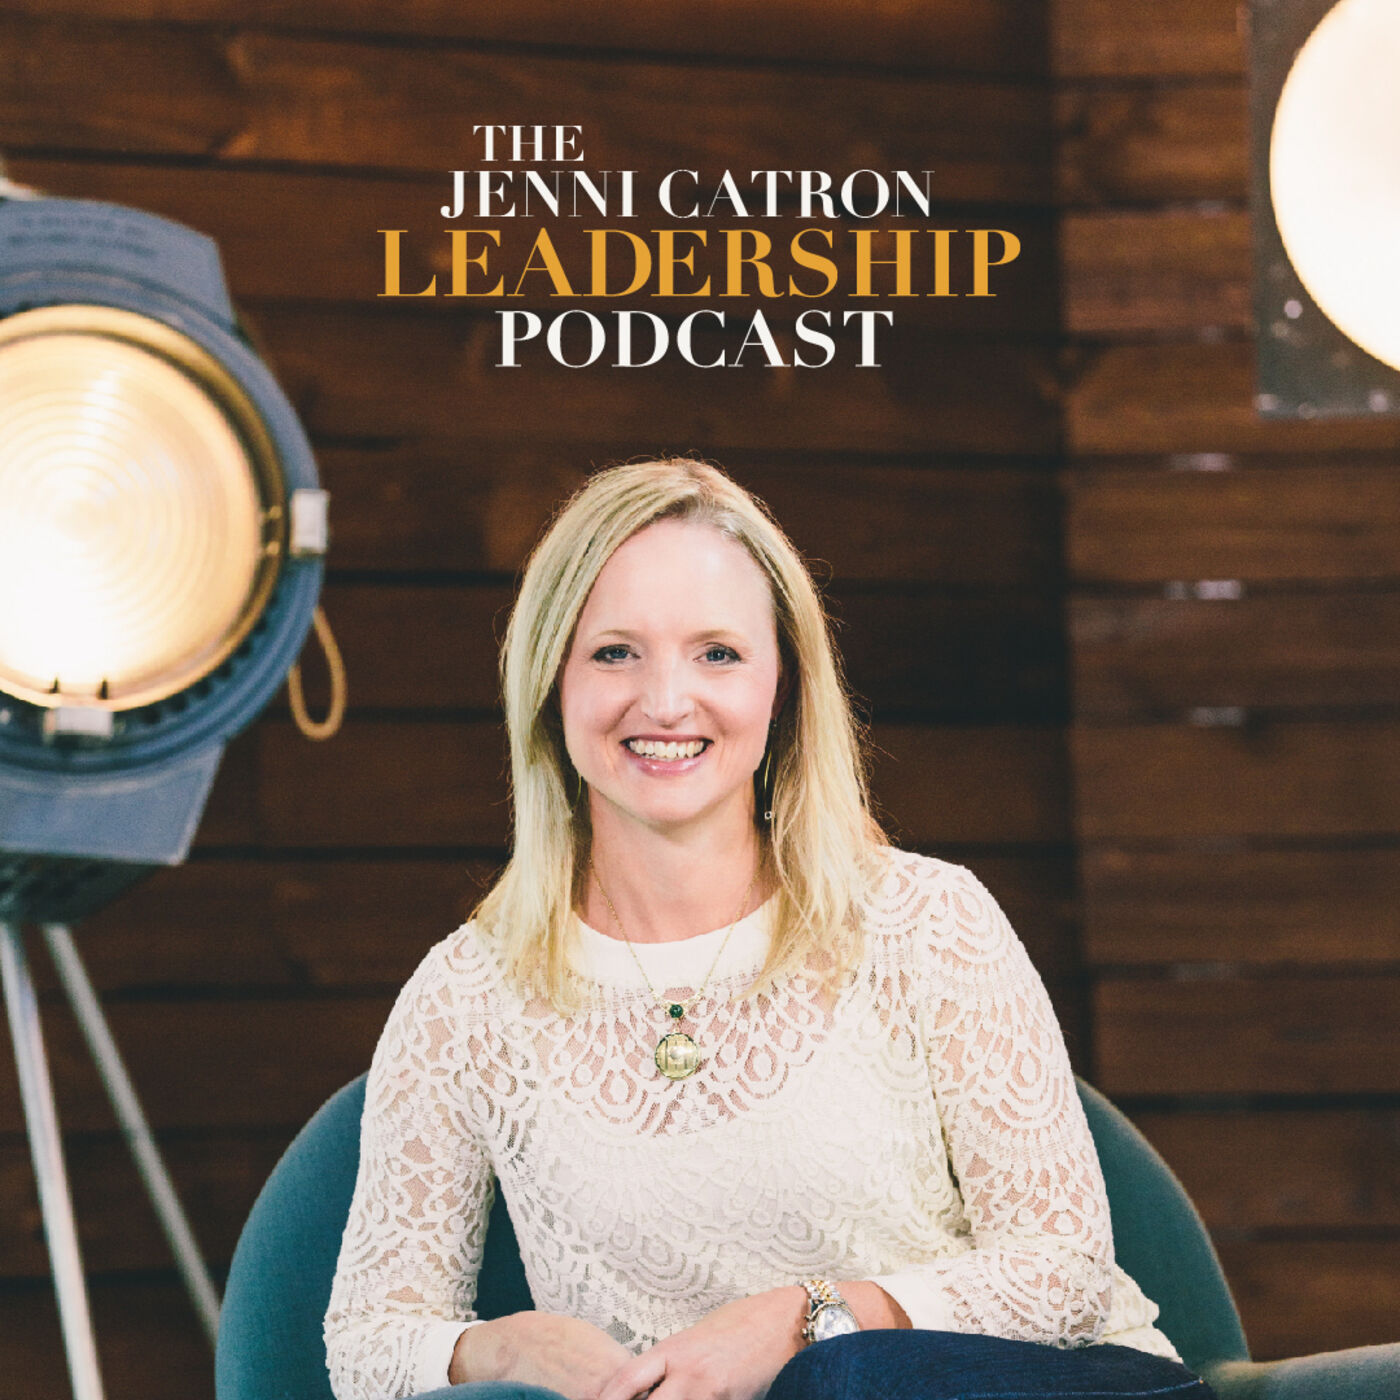 CULTURE - Jenni Catron on Why Culture Matters